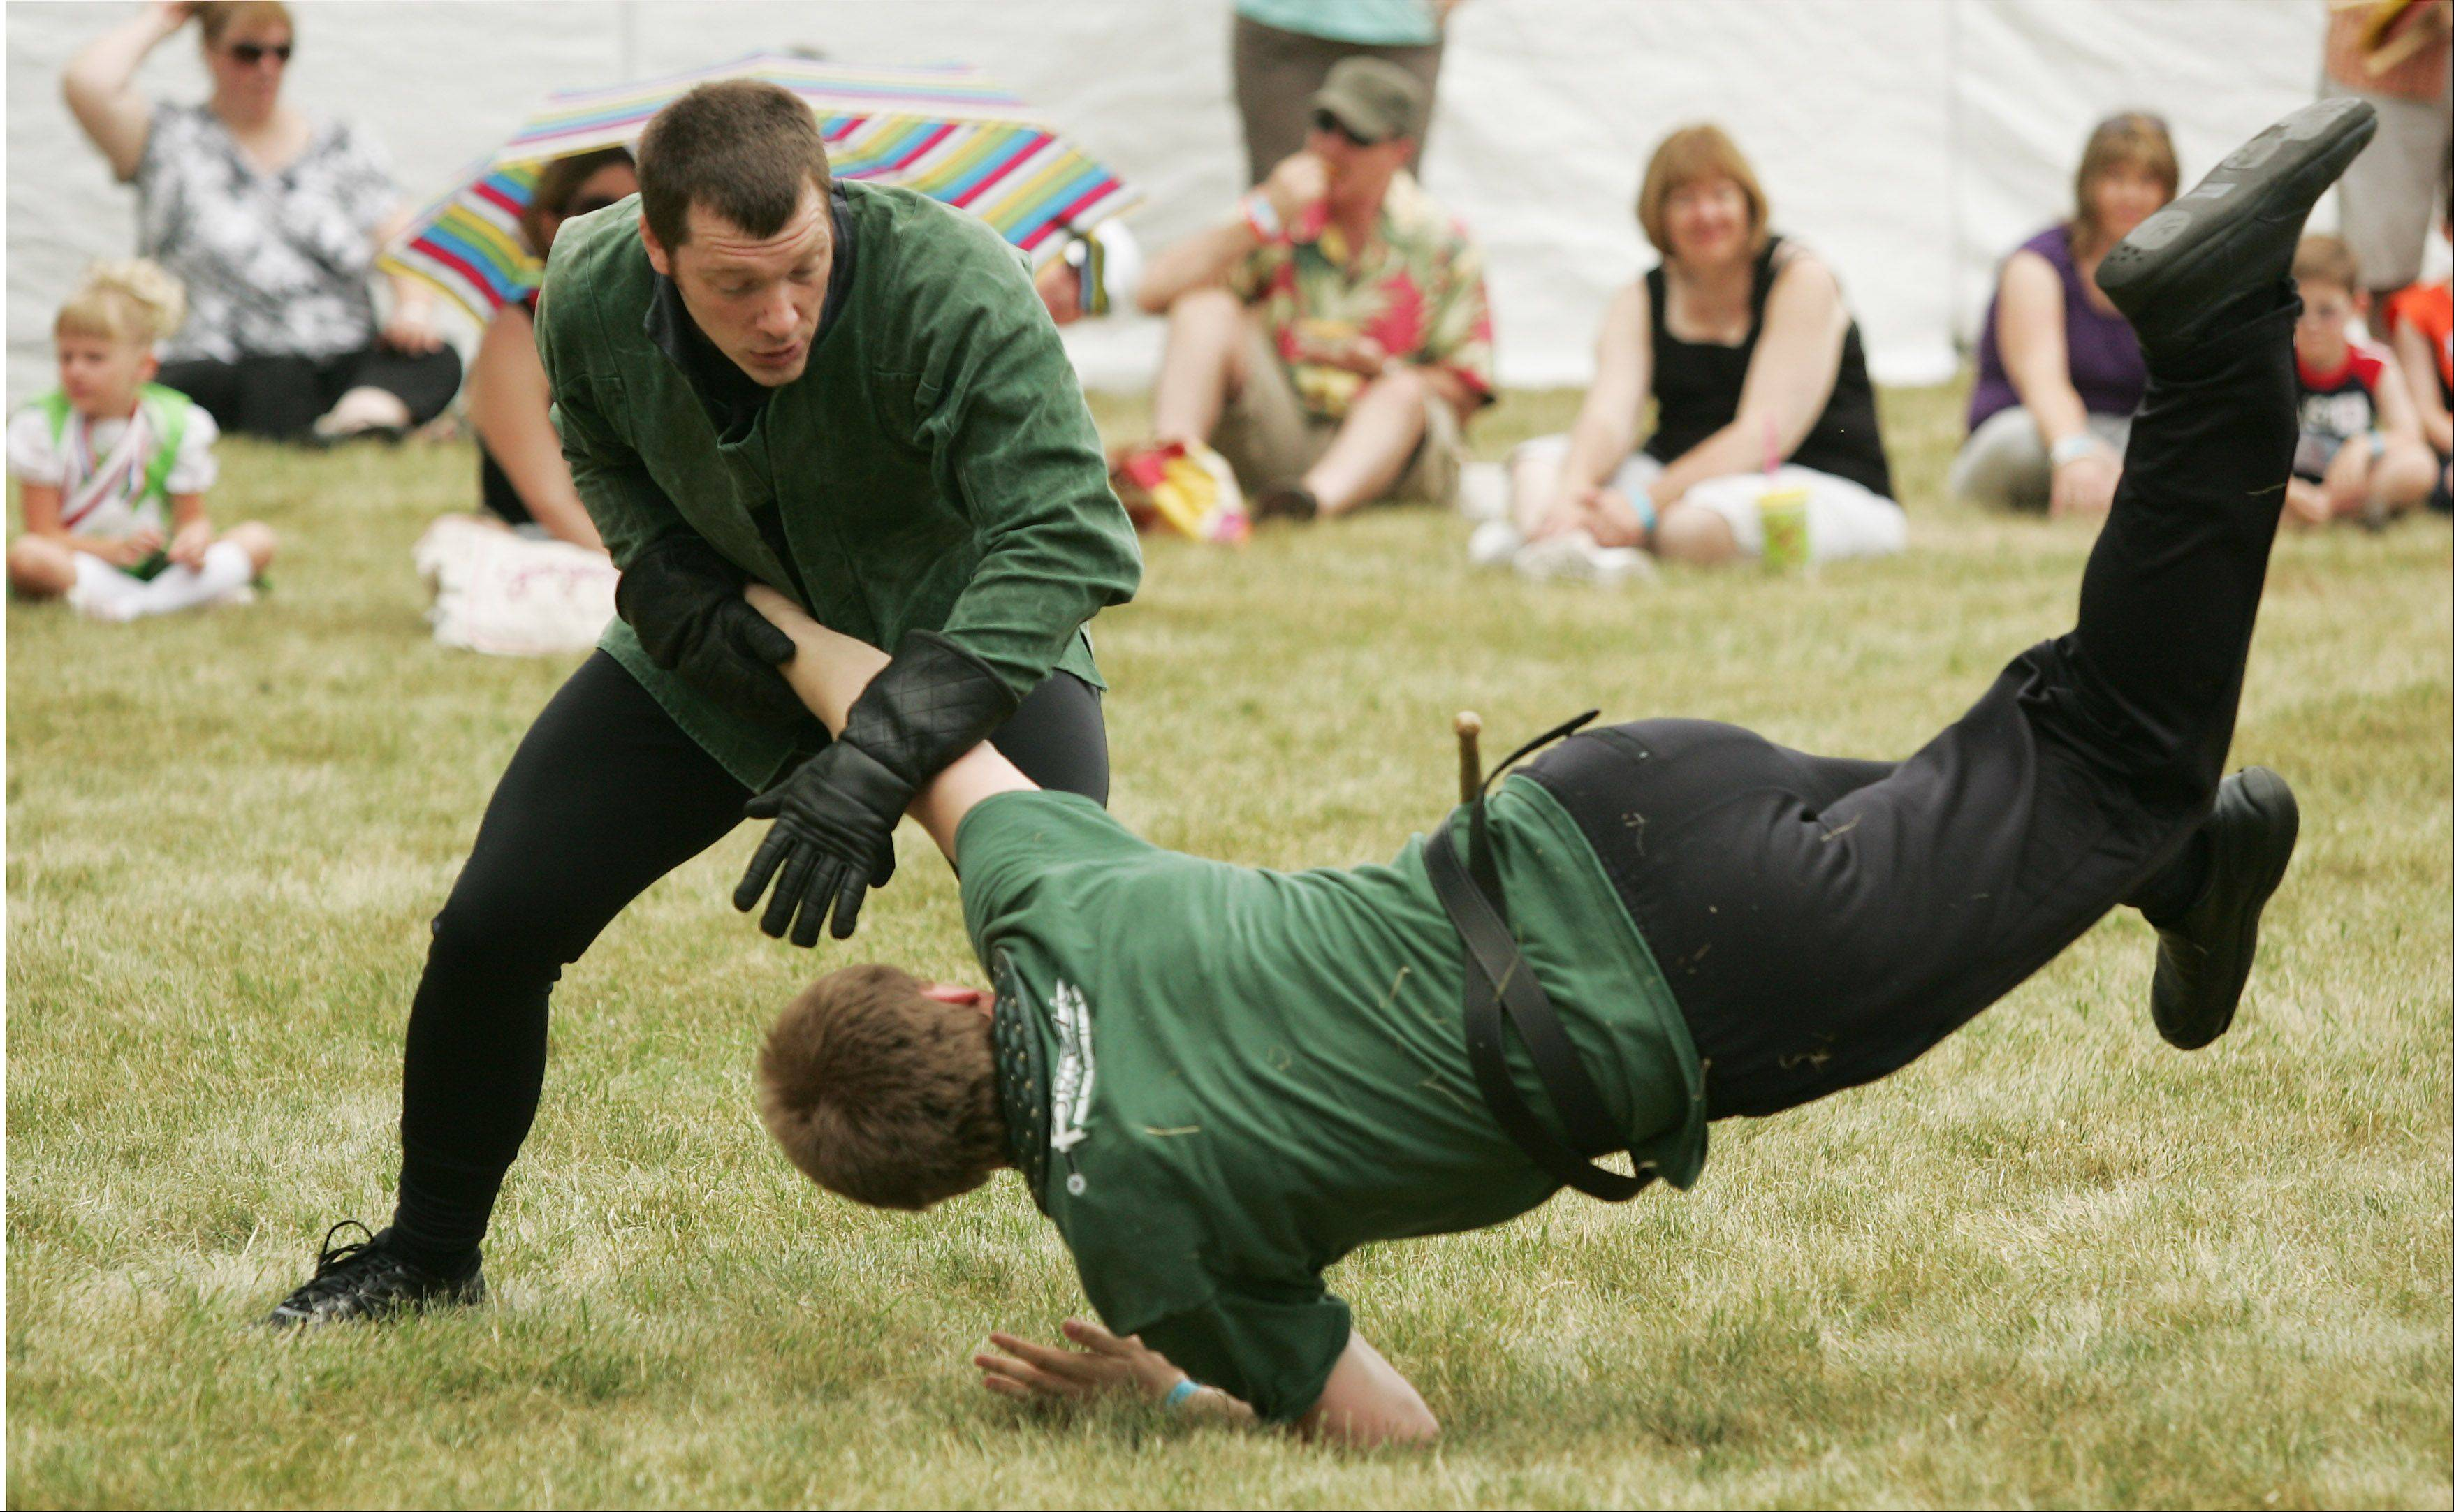 Jesse Kulla of Chicago and Nathan Wisniewski of Arlington Heights, members of the Chicago Swordplay Guild, demonstrate grappling techniques Saturday during the Illinois St. Andrew Society Scottish Festival and Highland Games at Hamilton Lakes in Itasca.